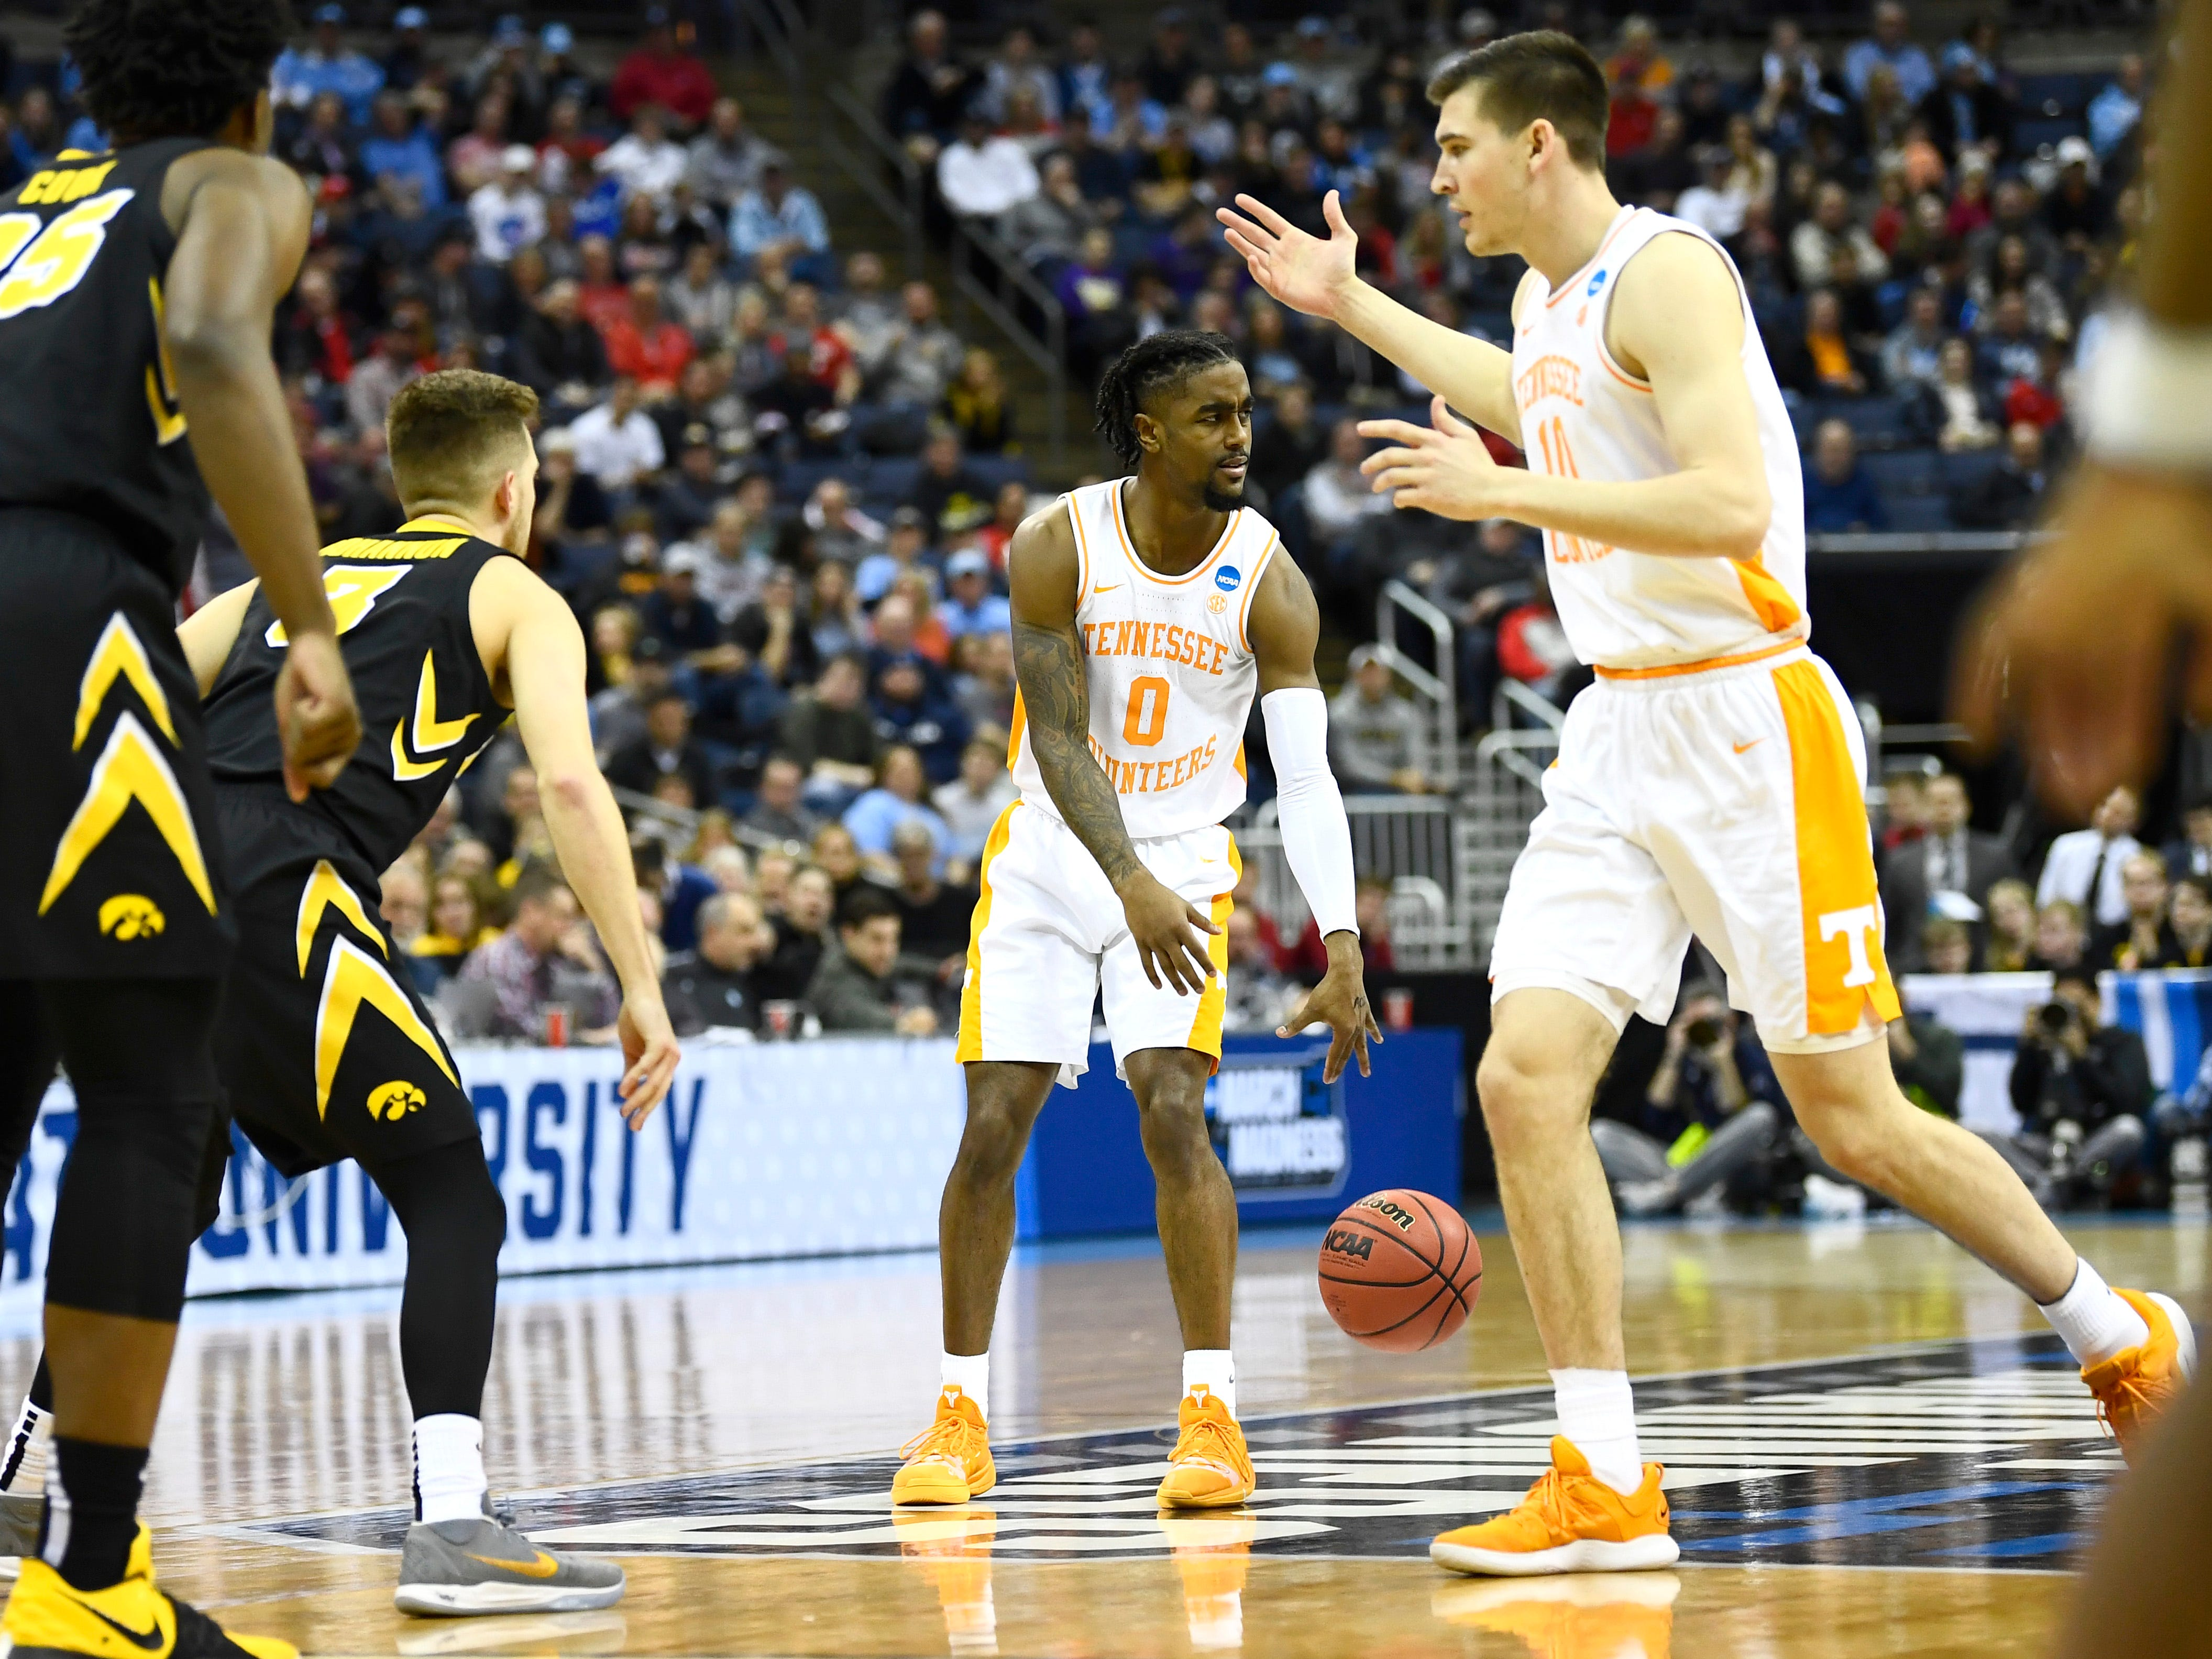 Tennessee guard Jordan Bone (0) and forward John Fulkerson (10) look in disbelief after Fulkerson was pushed off by Iowa guard Jordan Bohannon (3) during the second half of the second-round game of the NCAA Tournament at Nationwide Arena in Columbus, Ohio, Sunday, March 24, 2019.